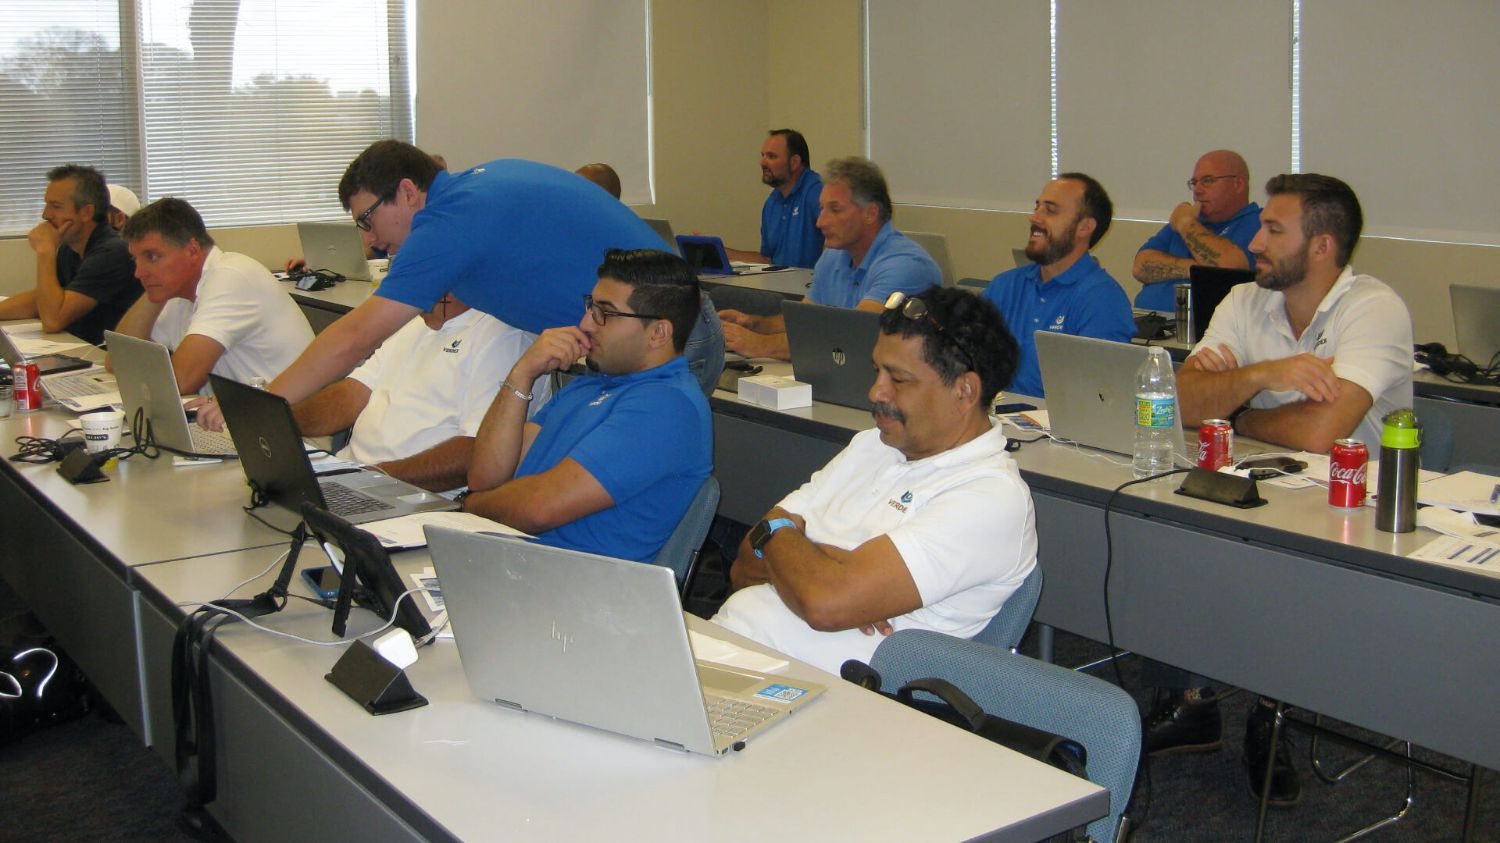 Verdex employees in training